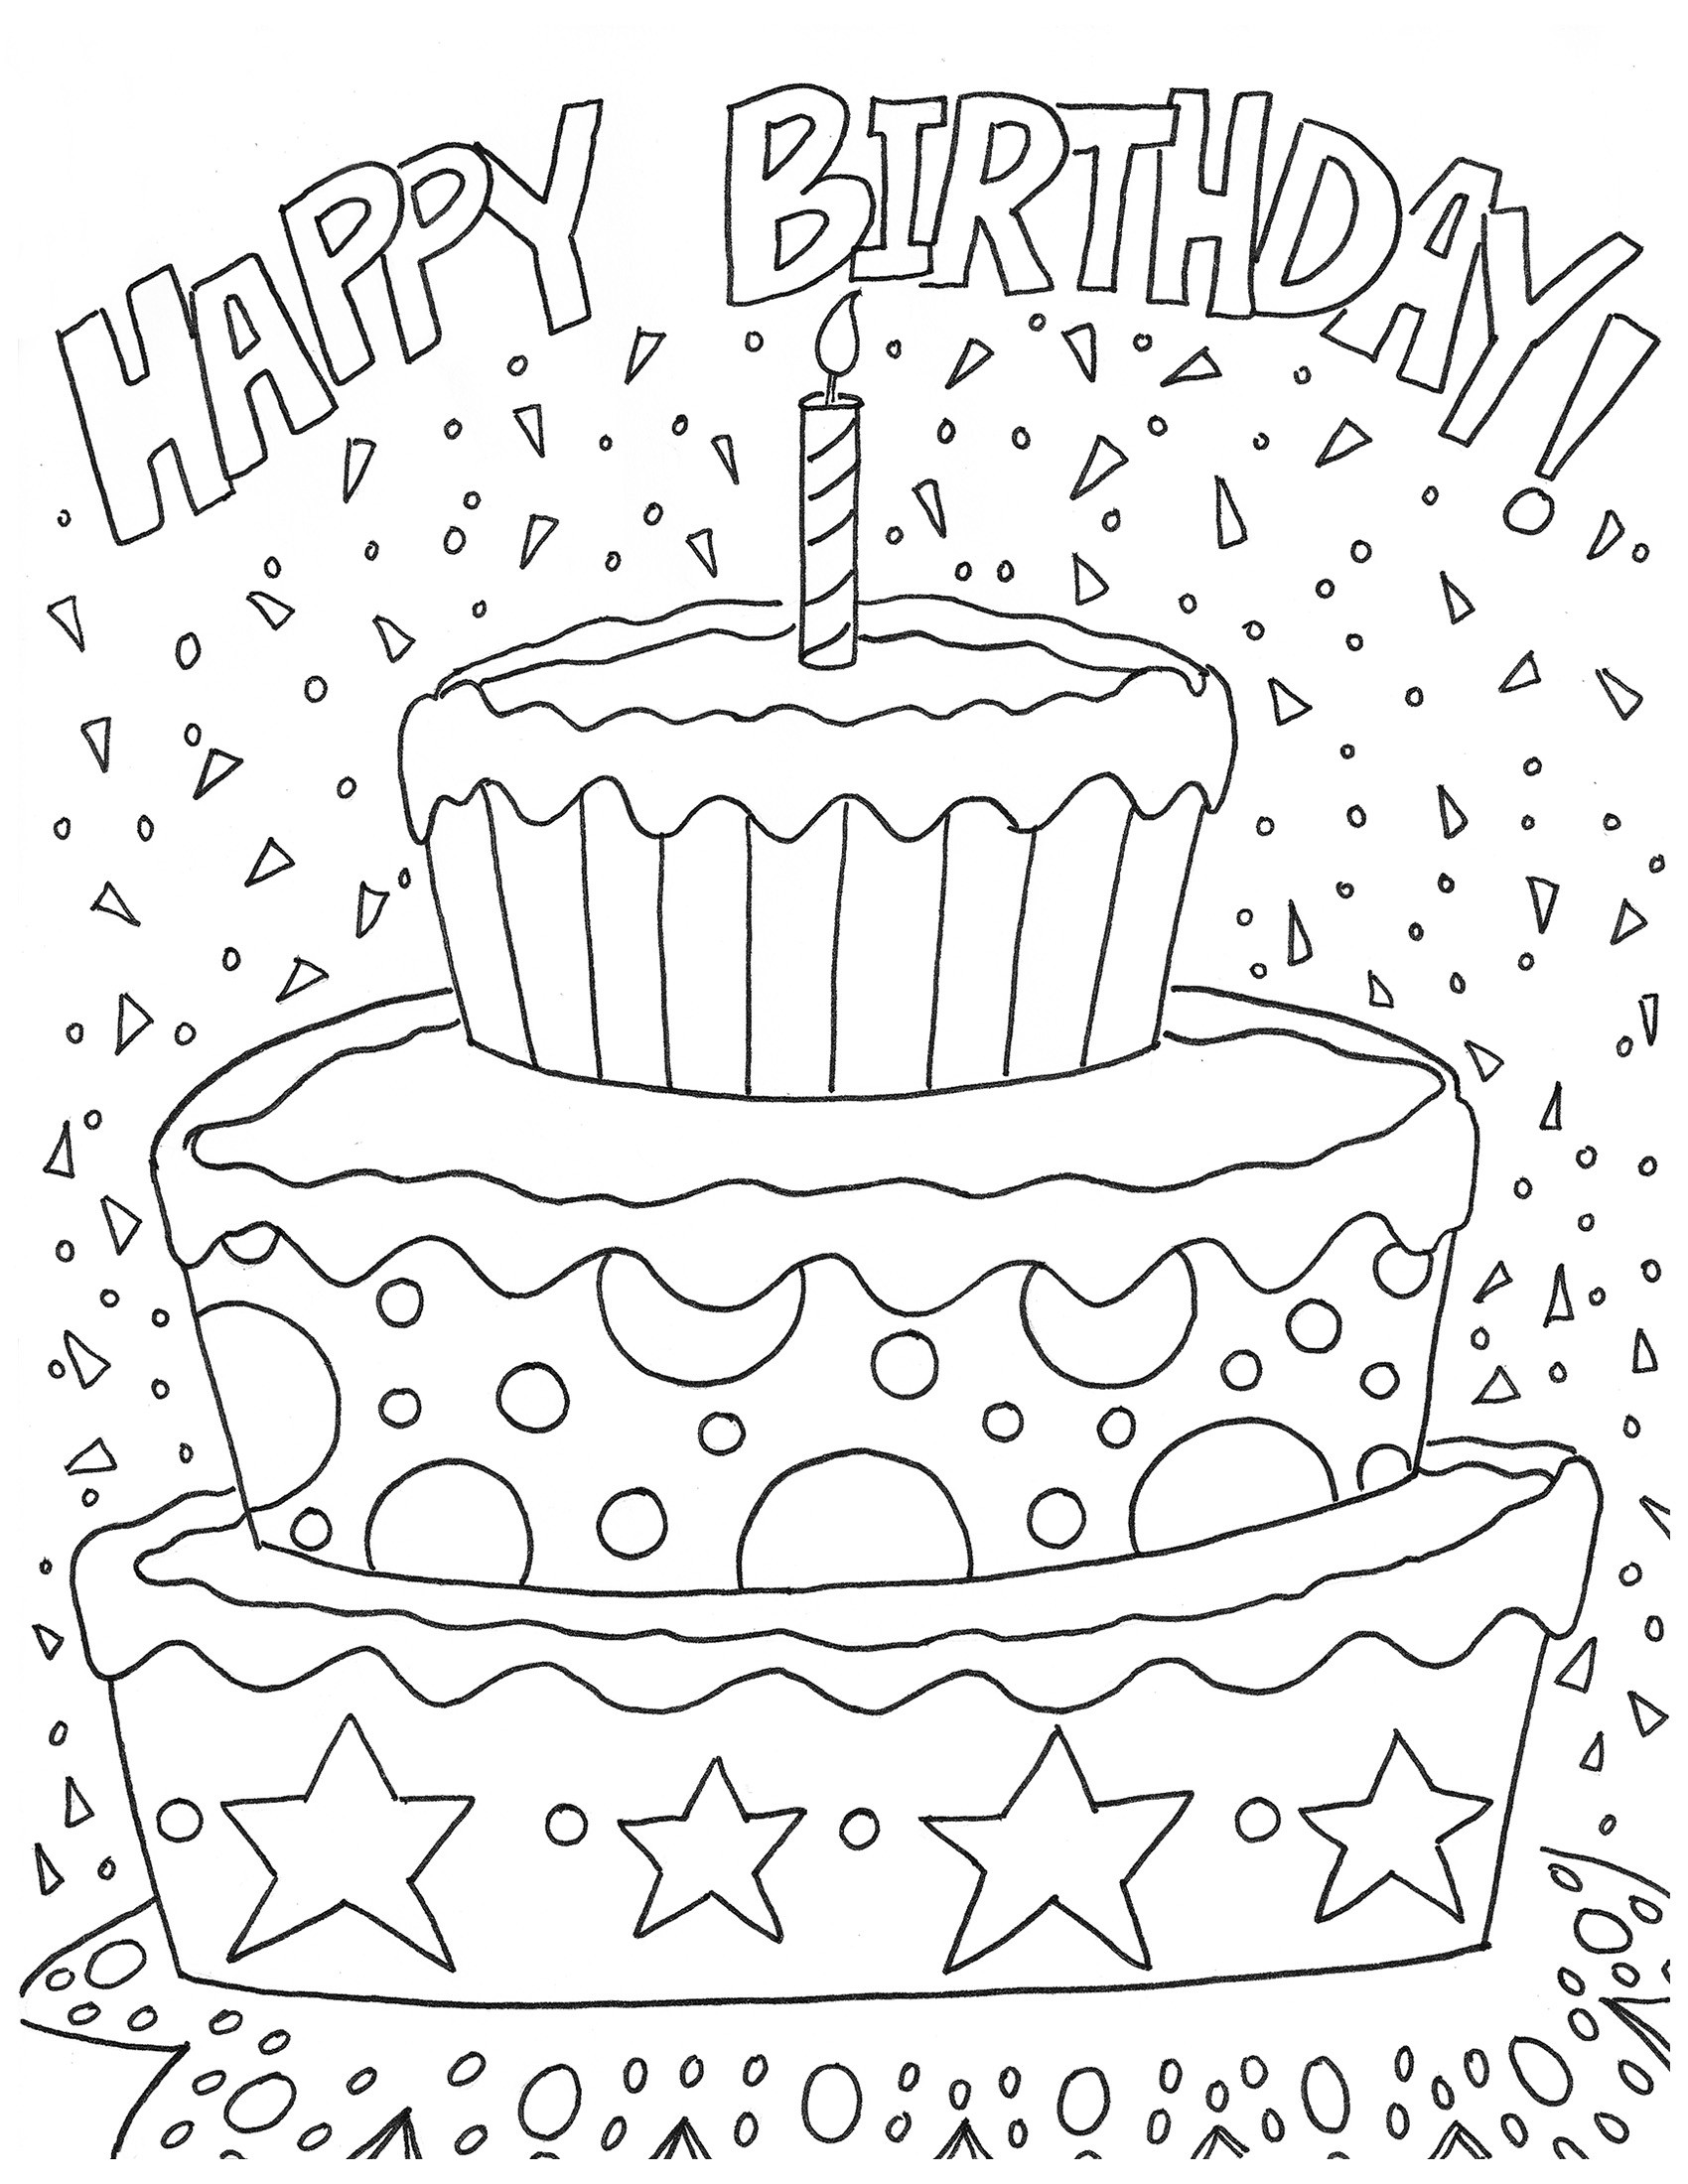 colouring pages for birthday ; superior-happy-birthday-color-page-coloring-pages-best-of